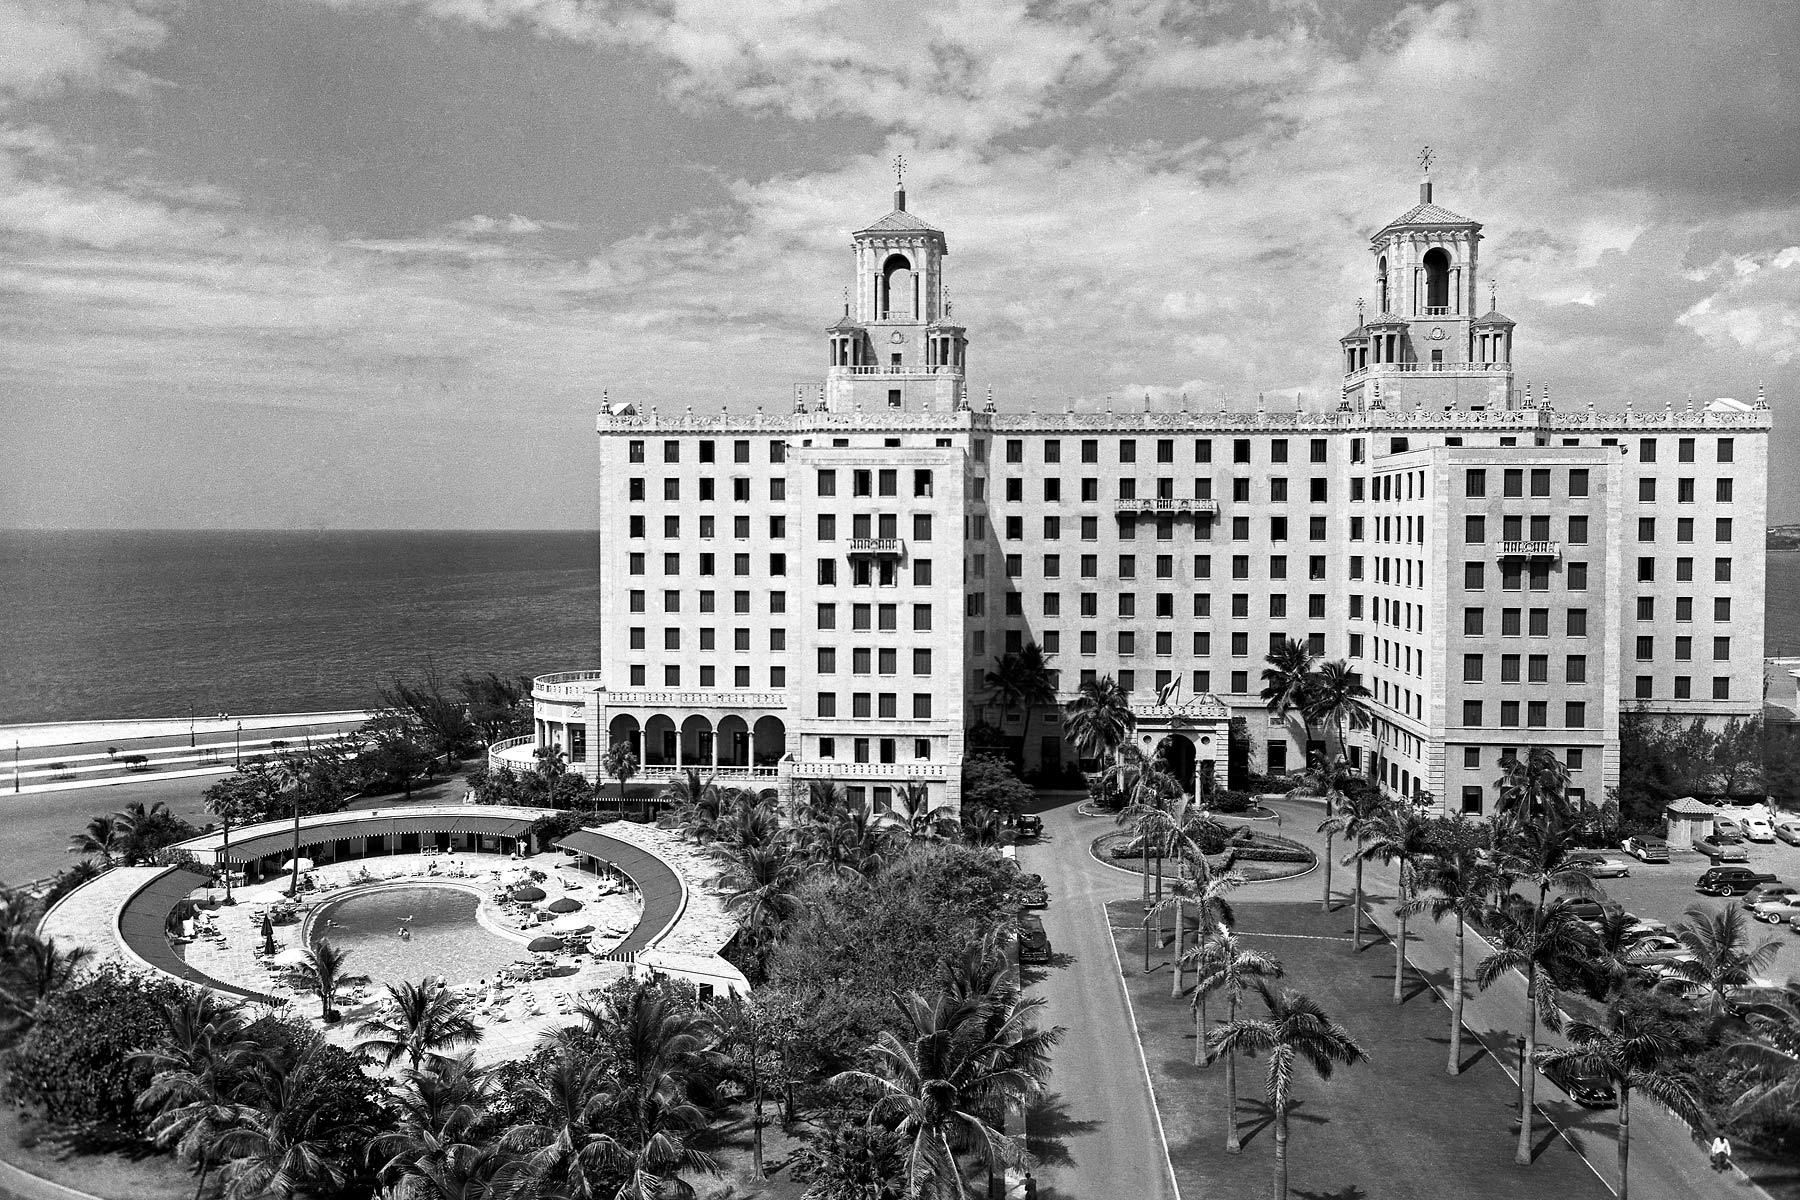 Royal Palms line the National Hotel 1954